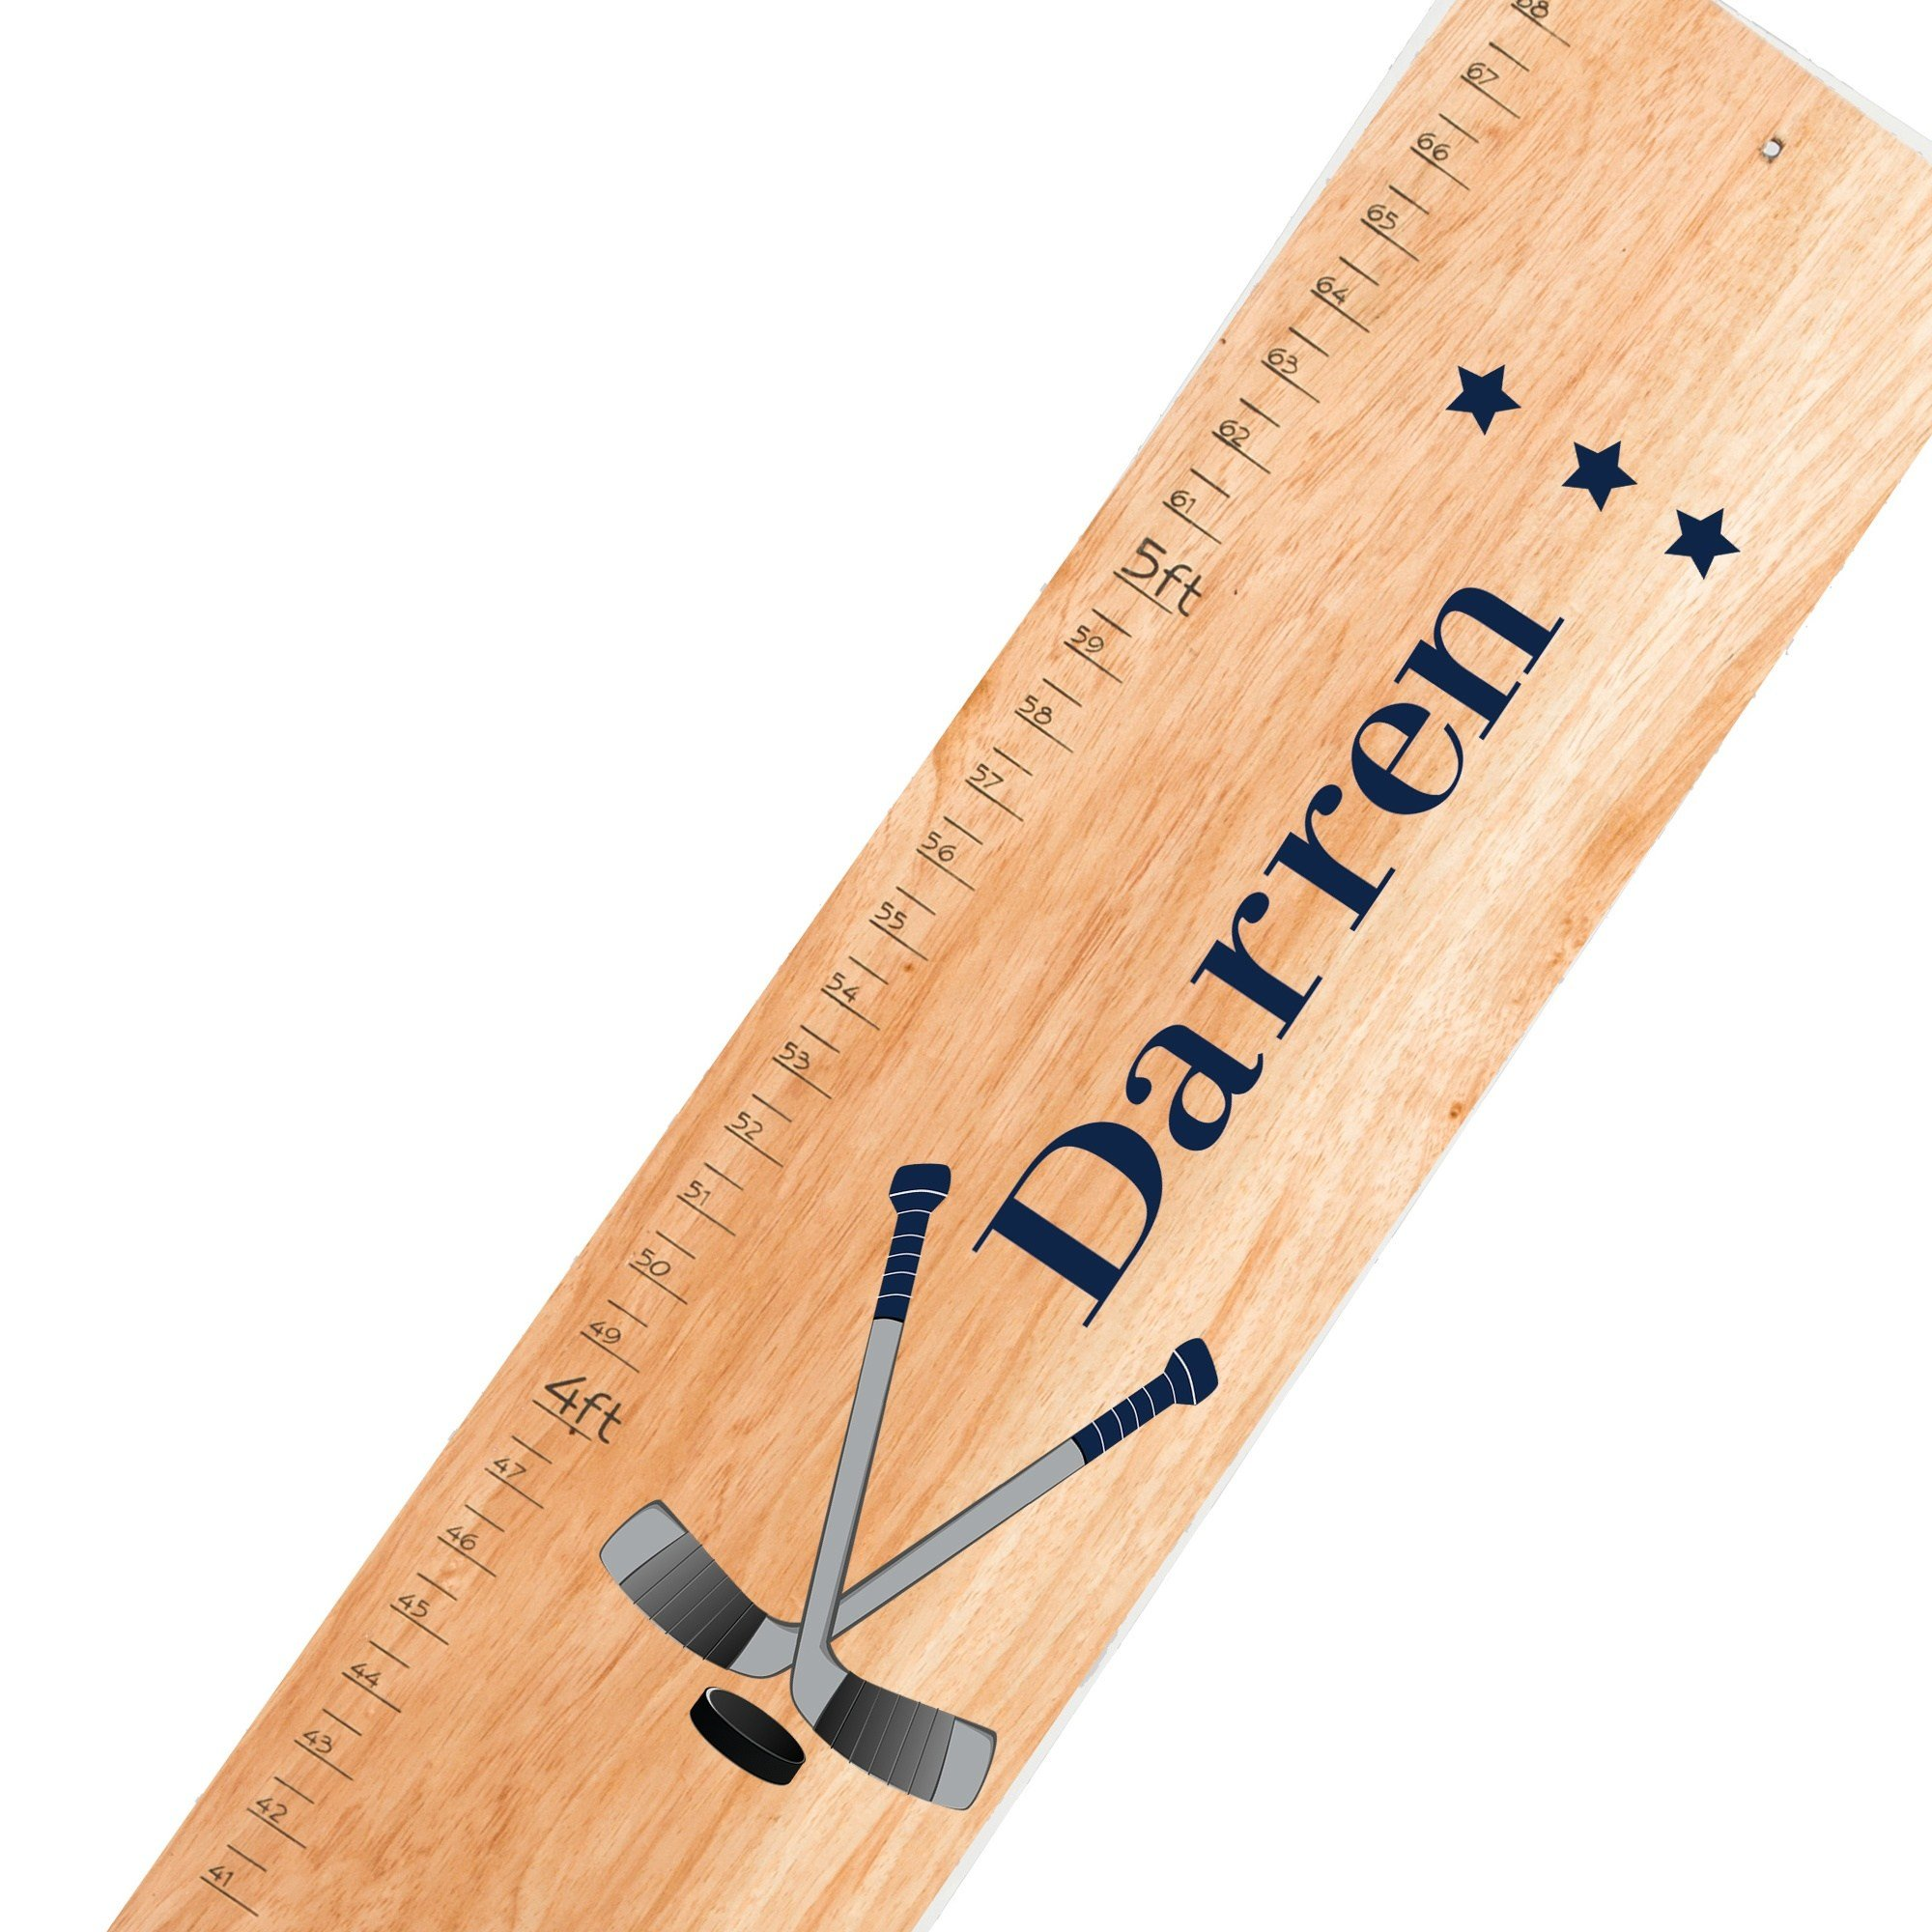 Personalized Ice Hockey Natural Growth Chart